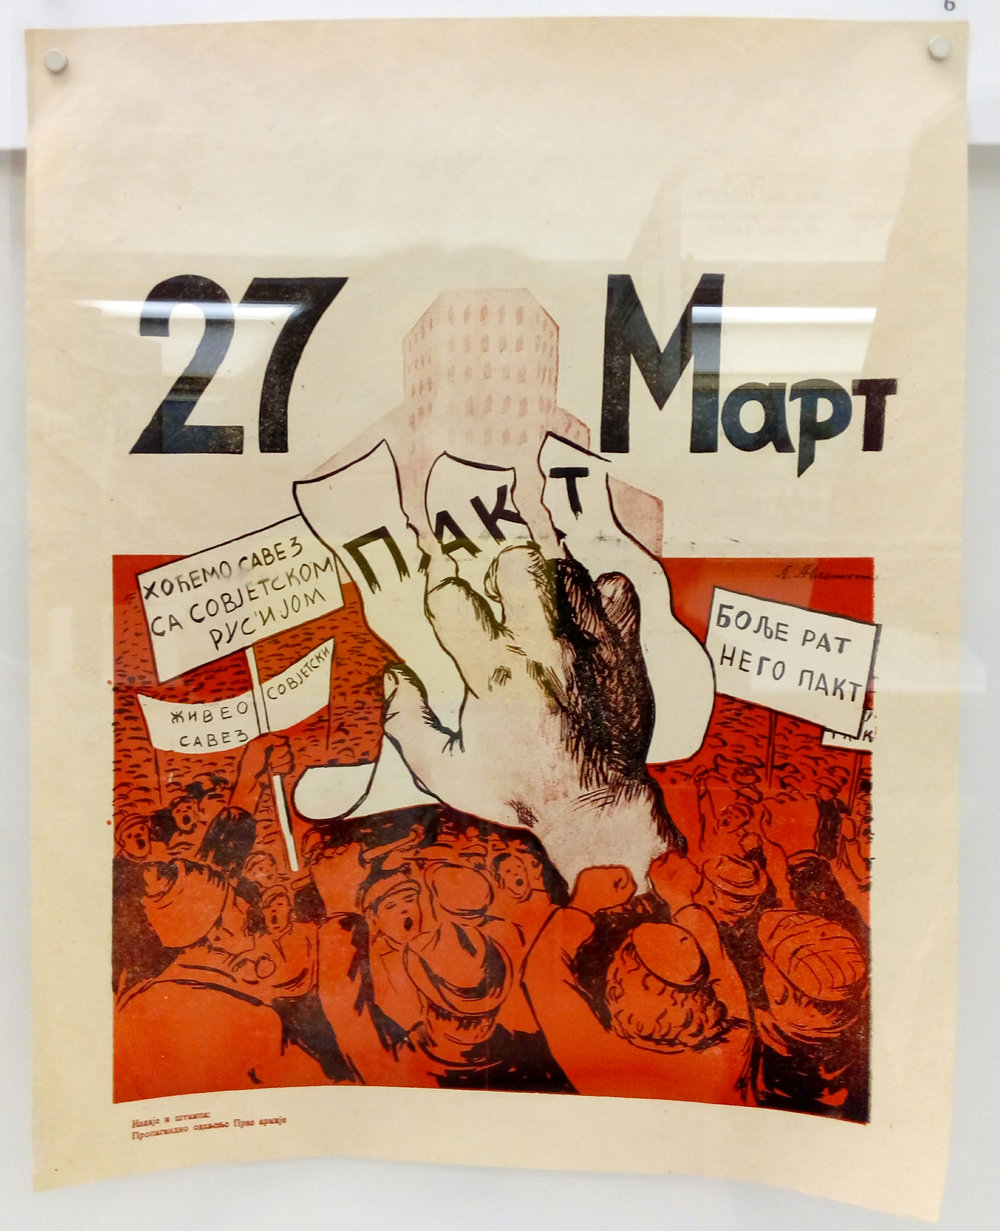 27 March poster.jpg